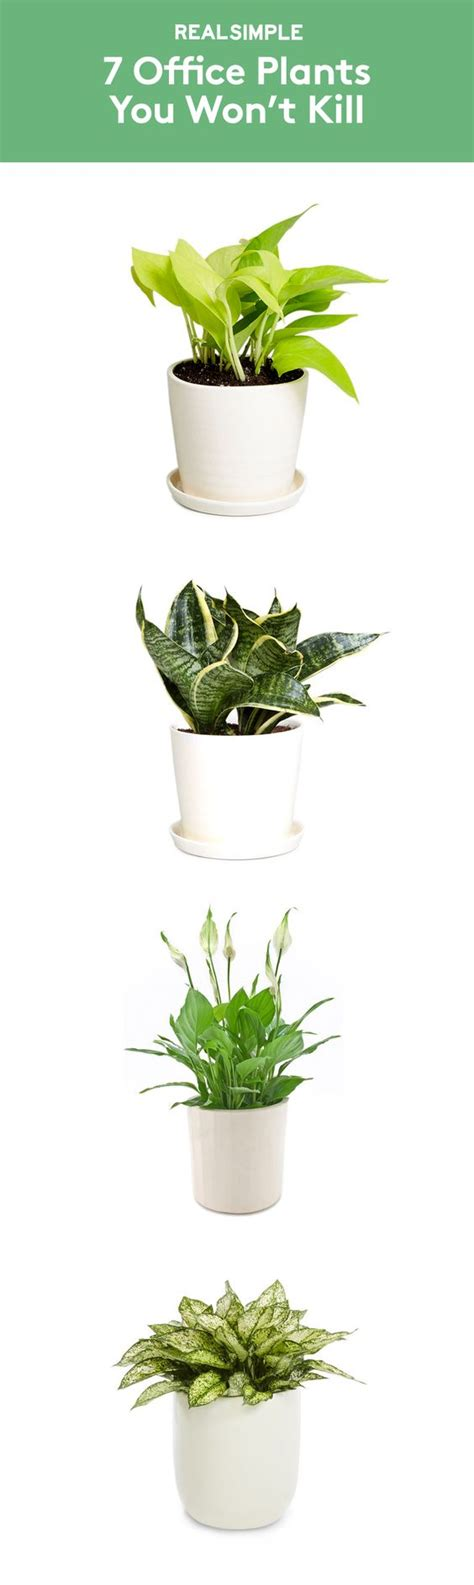 good office plants 7 office plants you won t kill kantoren planten en hangende ladder